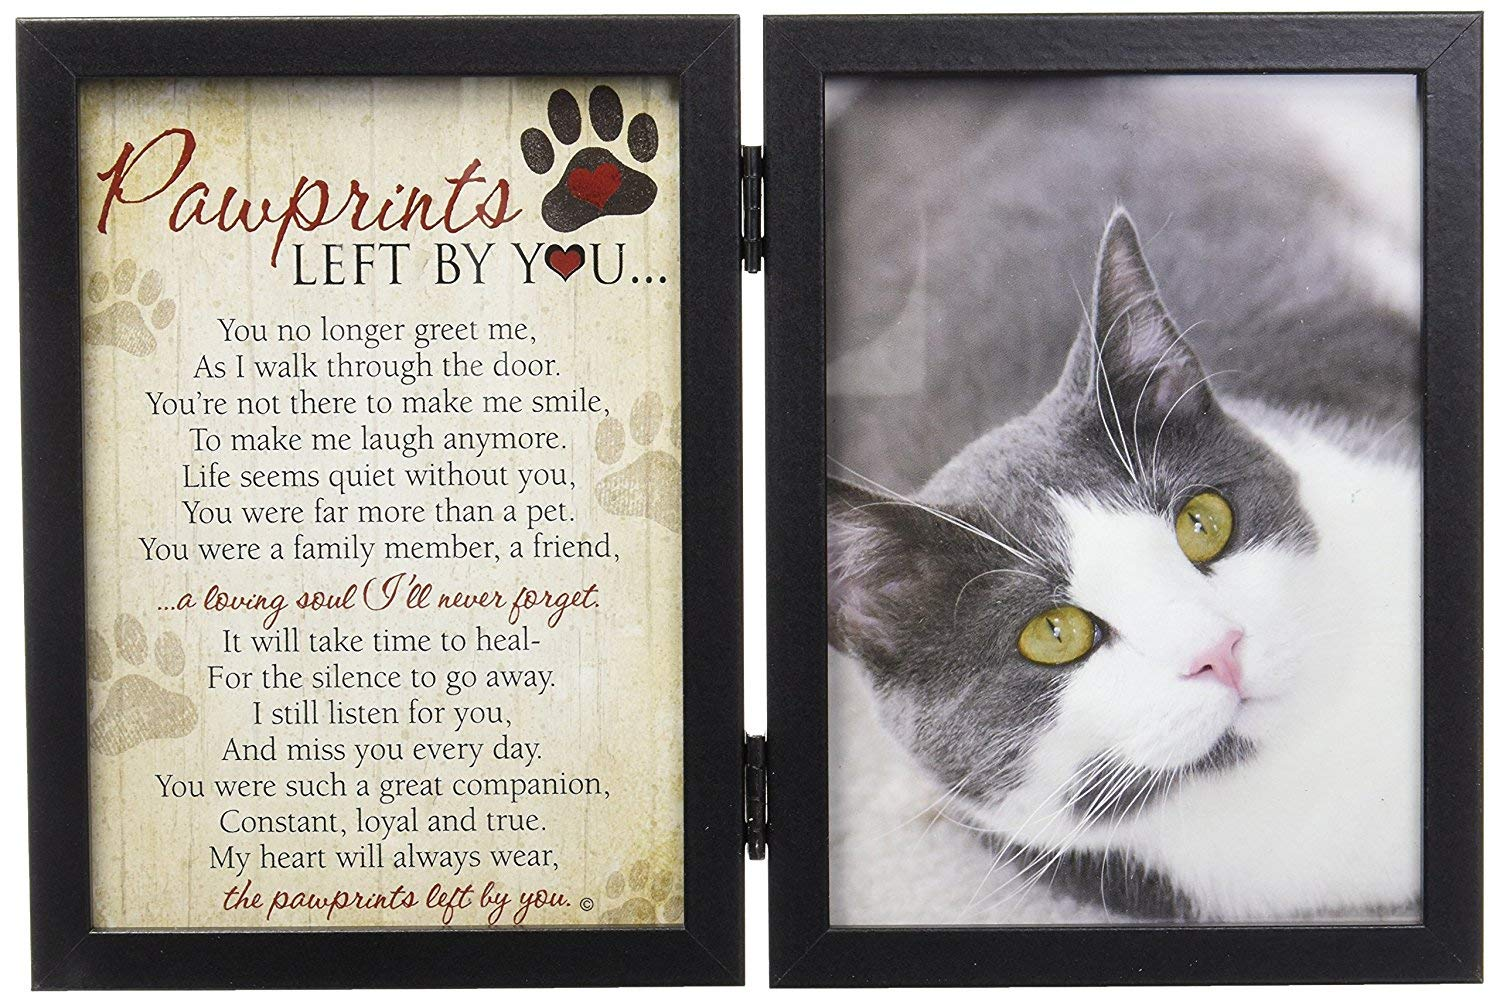 Pawprints Left By You Memorial 5x7 Frame for Cat with Pet Tag by Pawprints Left by You Memorial Gifts